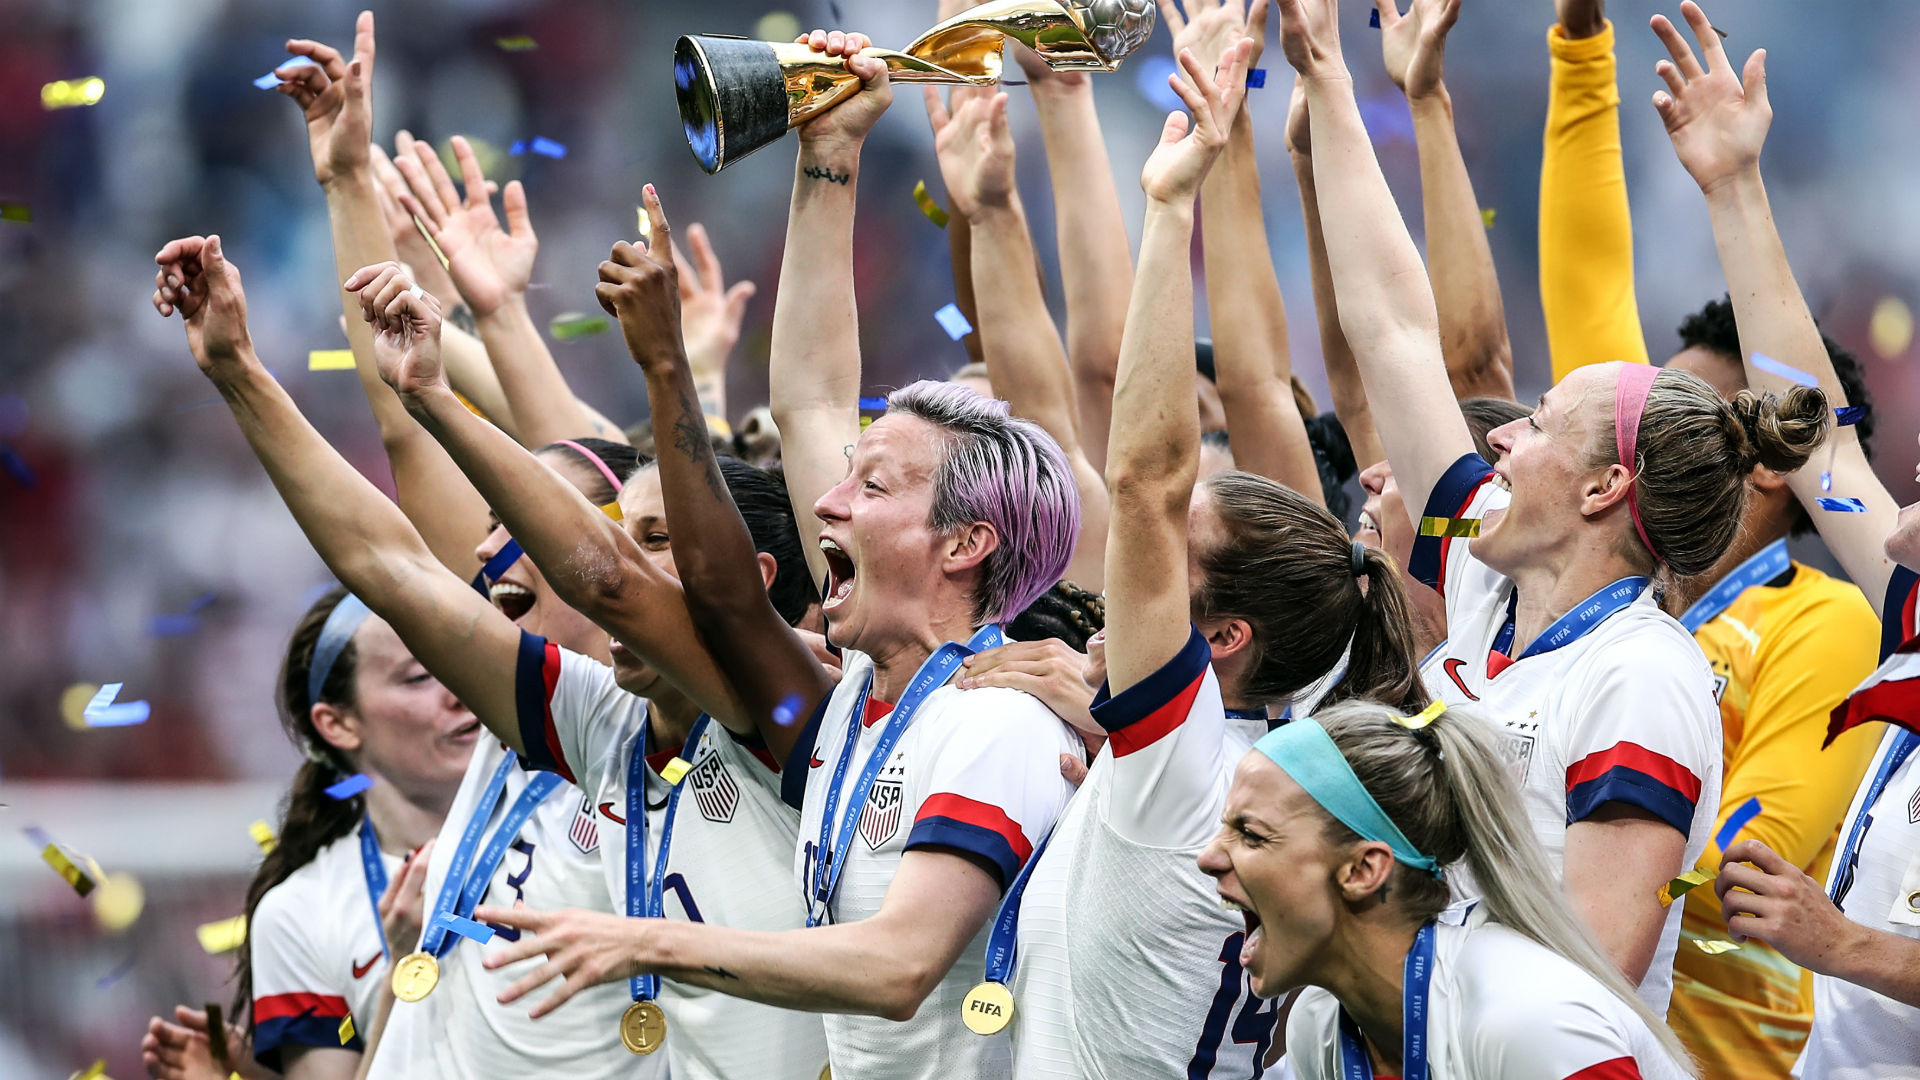 Five key quotes from USWNT star Megan Rapinoe's CNN appearance after World Cup win